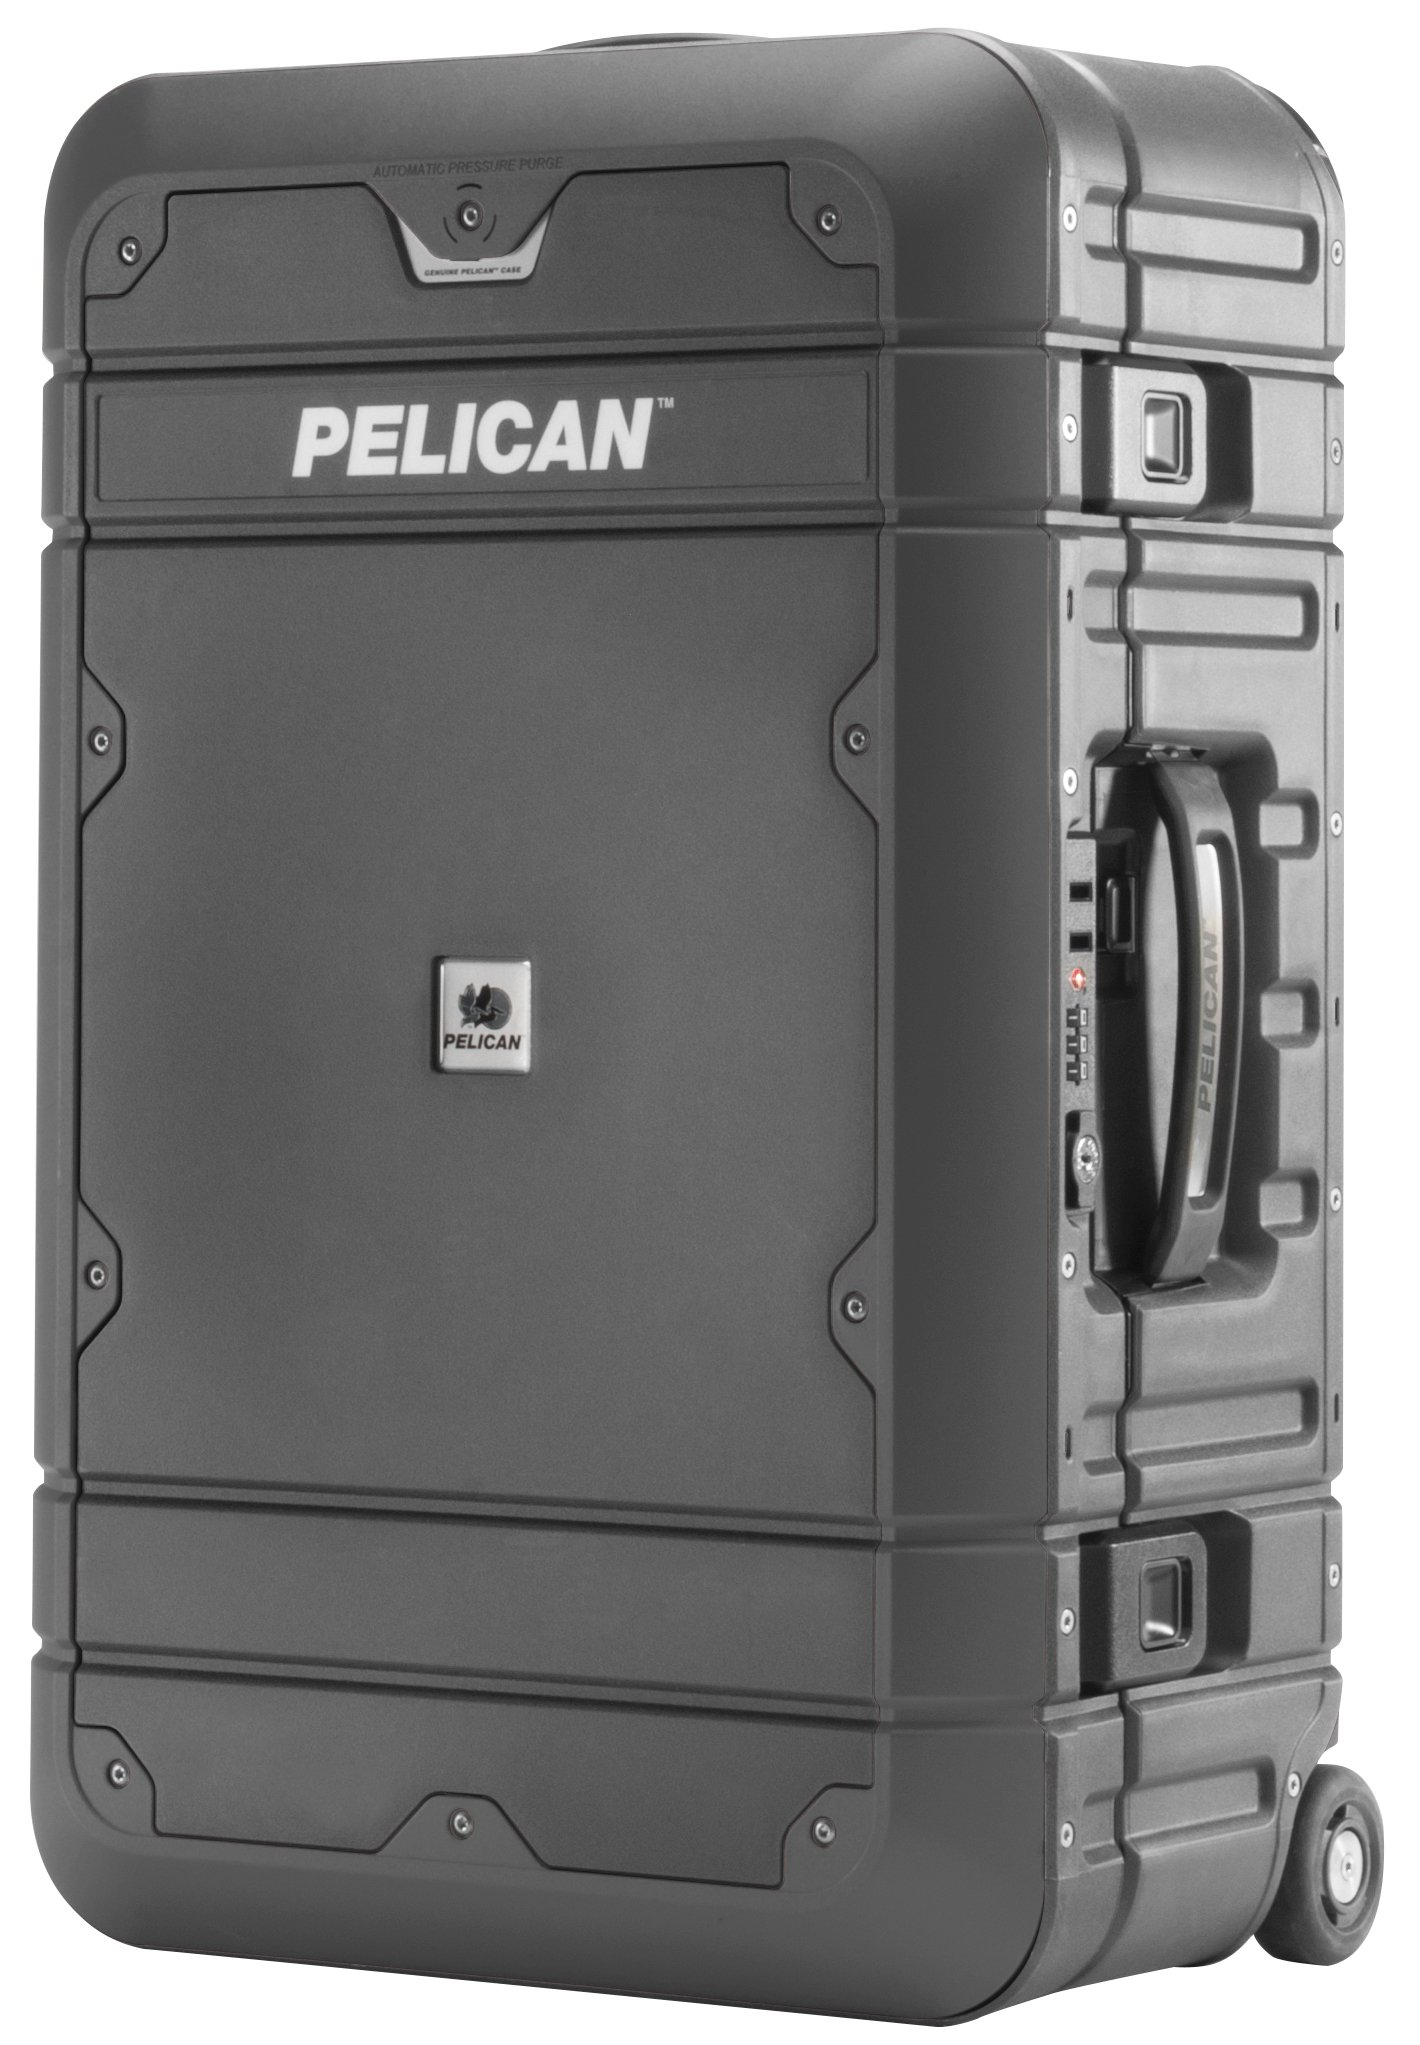 Pelican Elite Luggage | Carry-On with Enhanced Travel System (EL22-22 inch) - Grey/Black